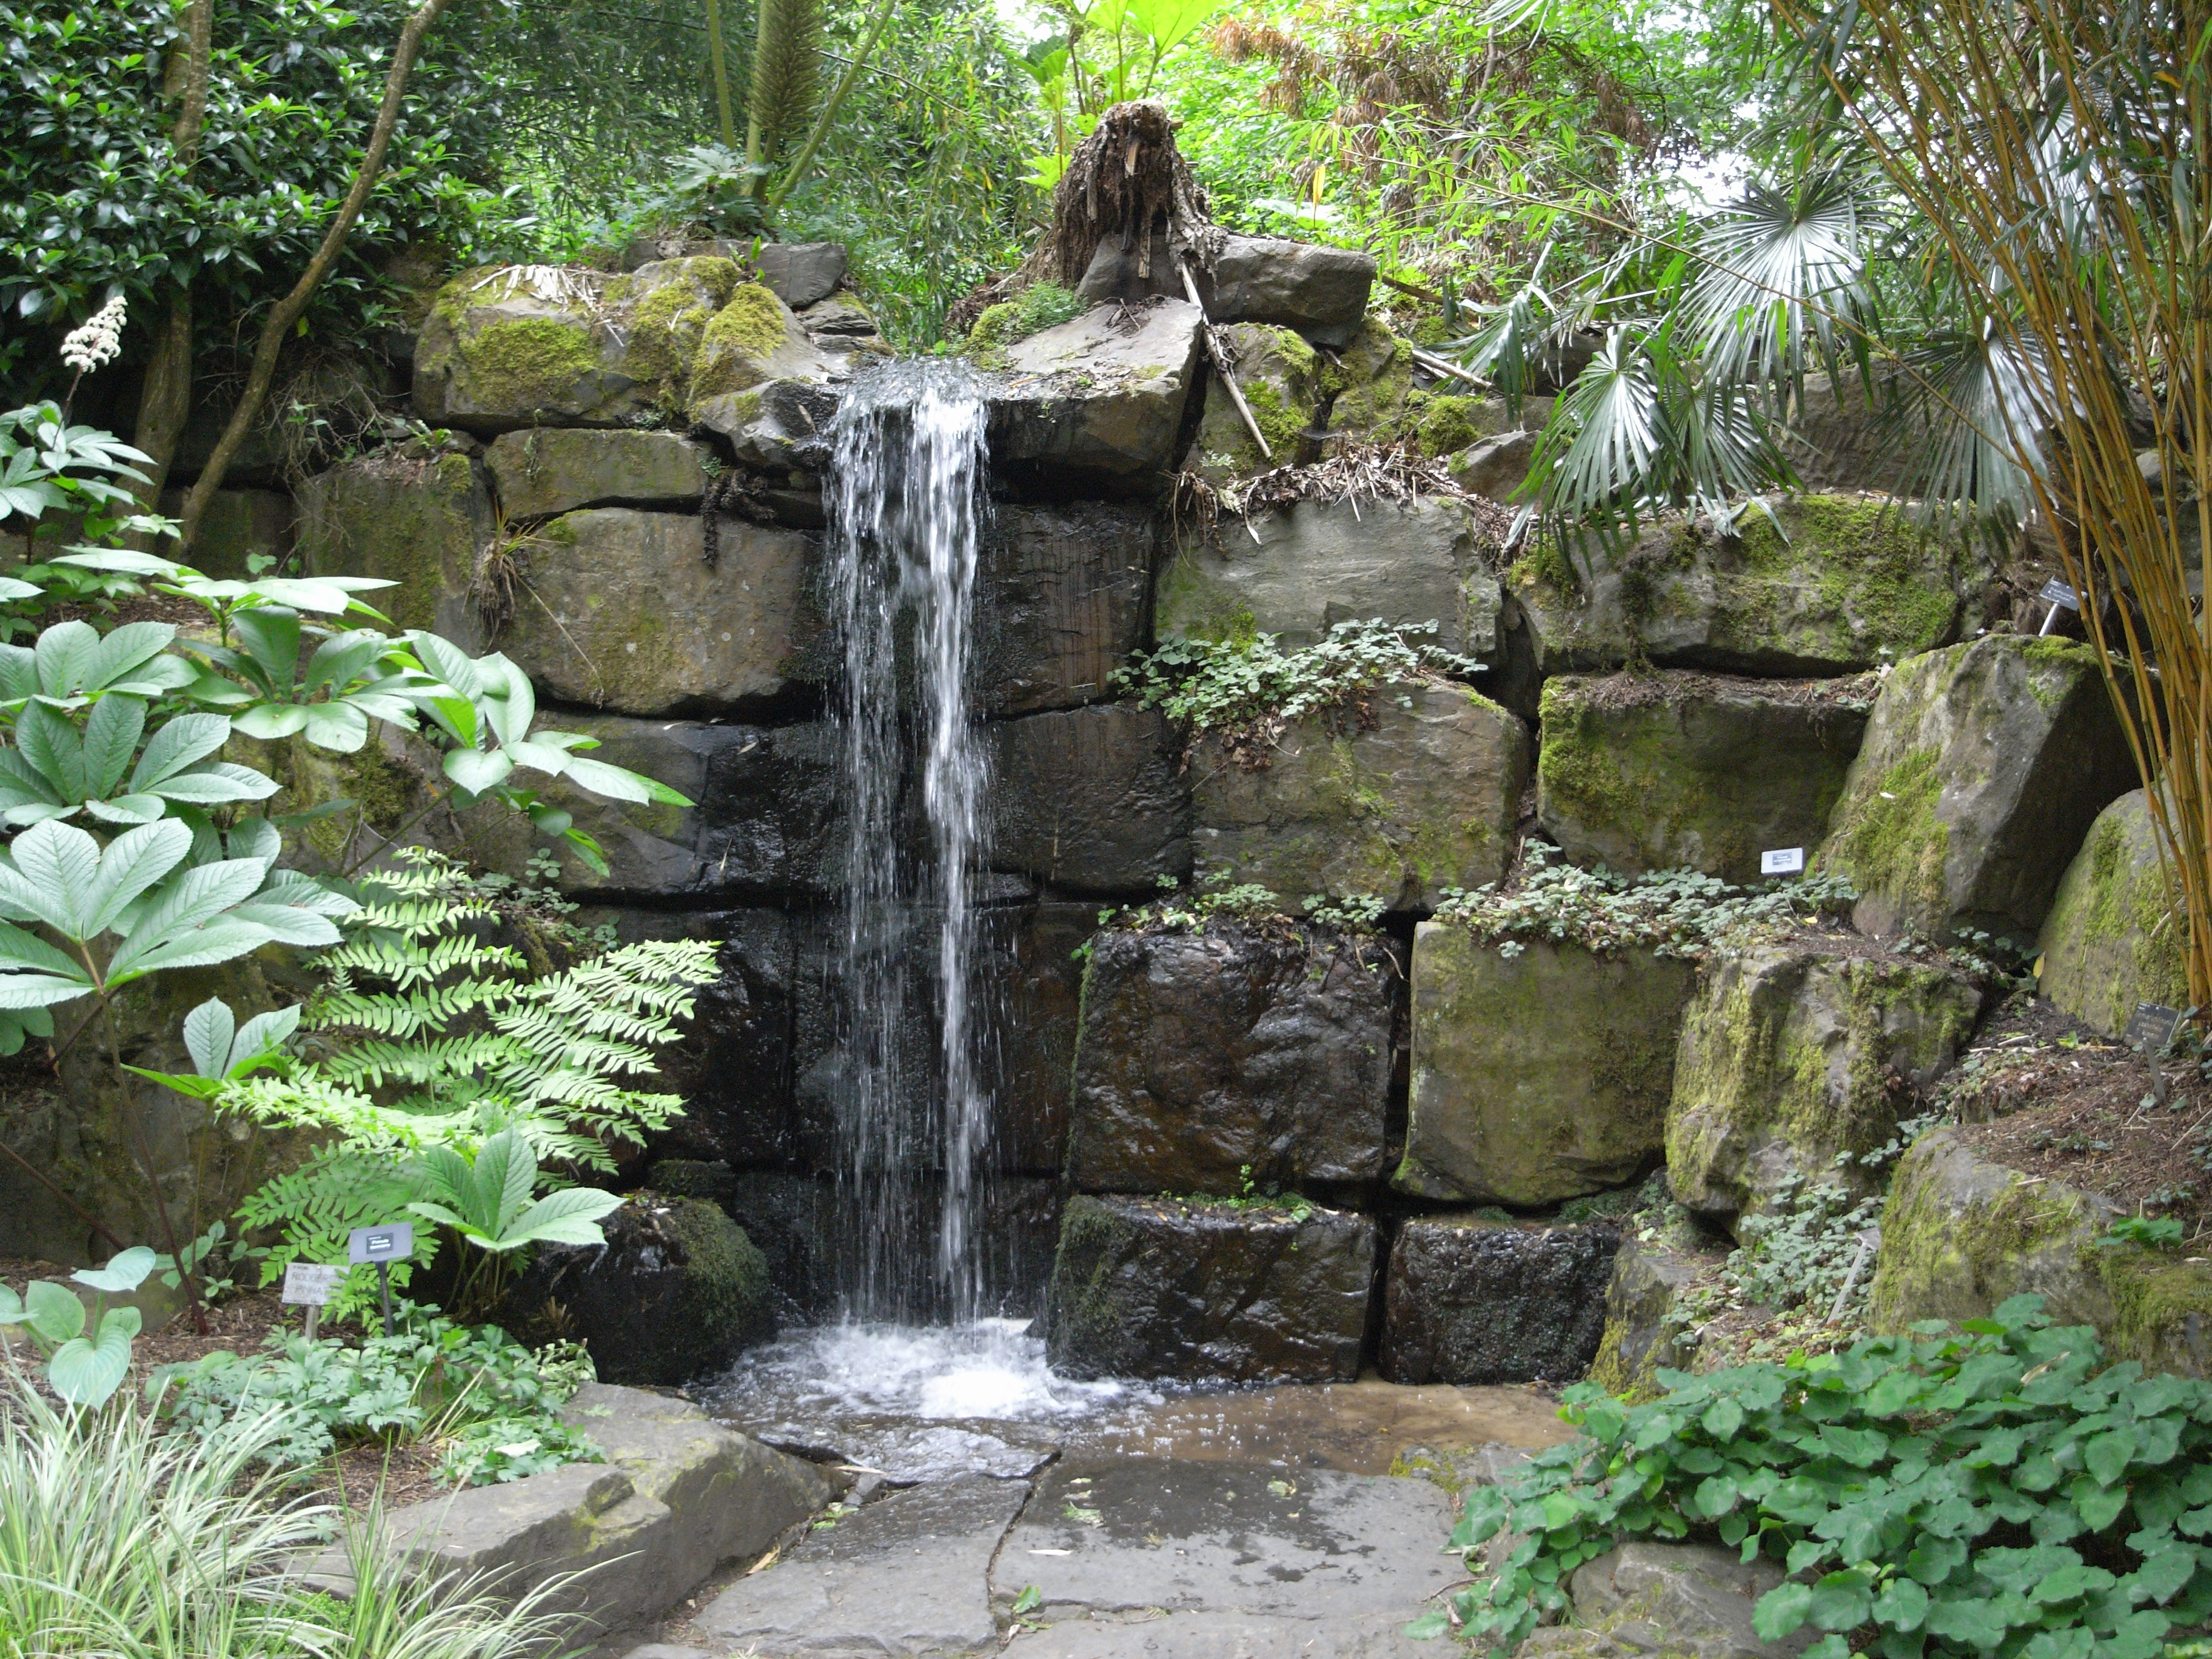 YP 3648x2736 jpeg v28 background Terrace by the waterfall 3648x2736